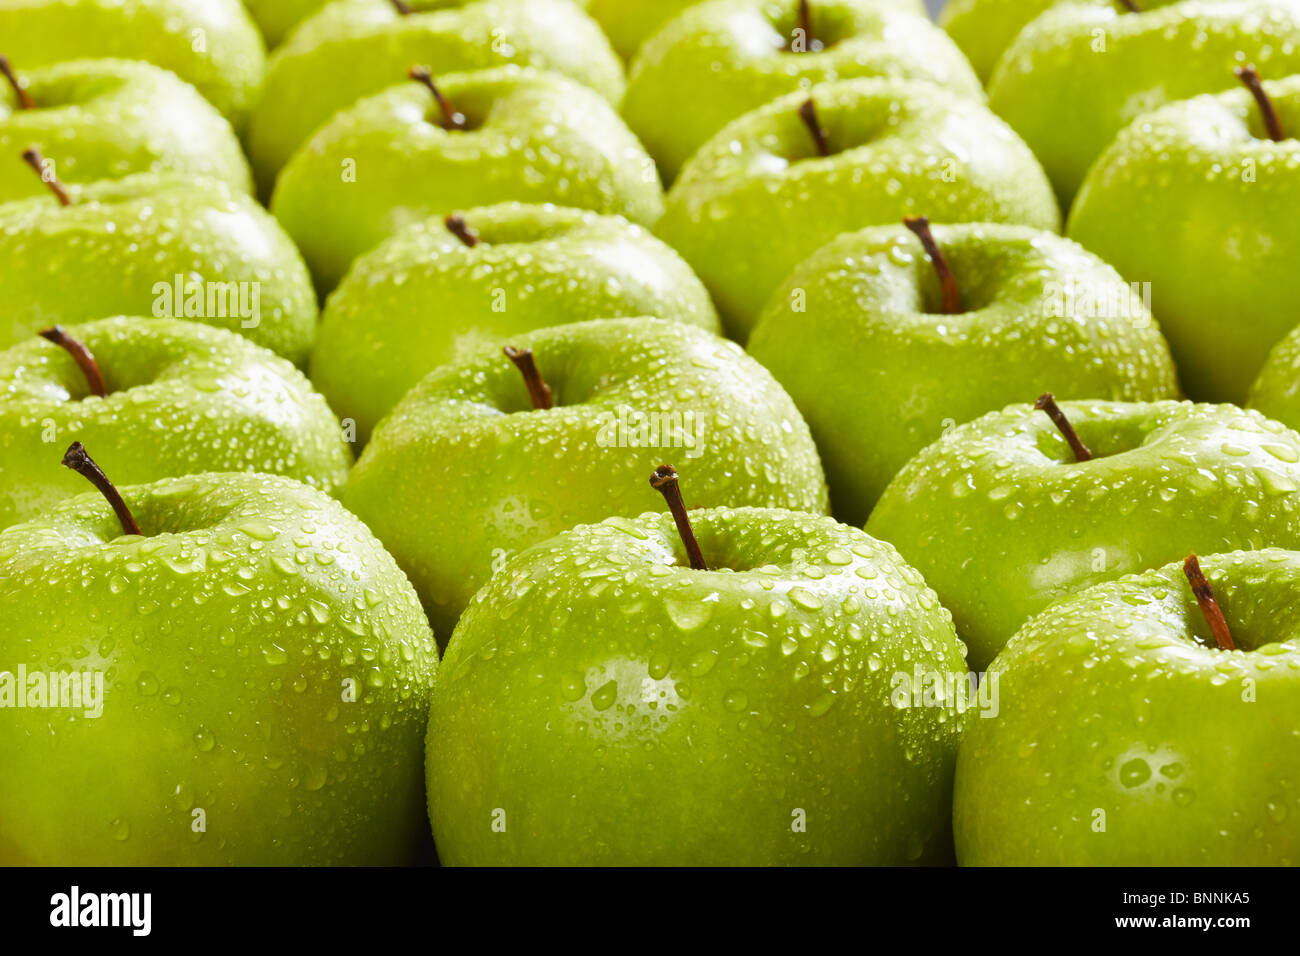 Grand groupe de pommes Granny Smith dans une rangée. Selective focus Photo Stock